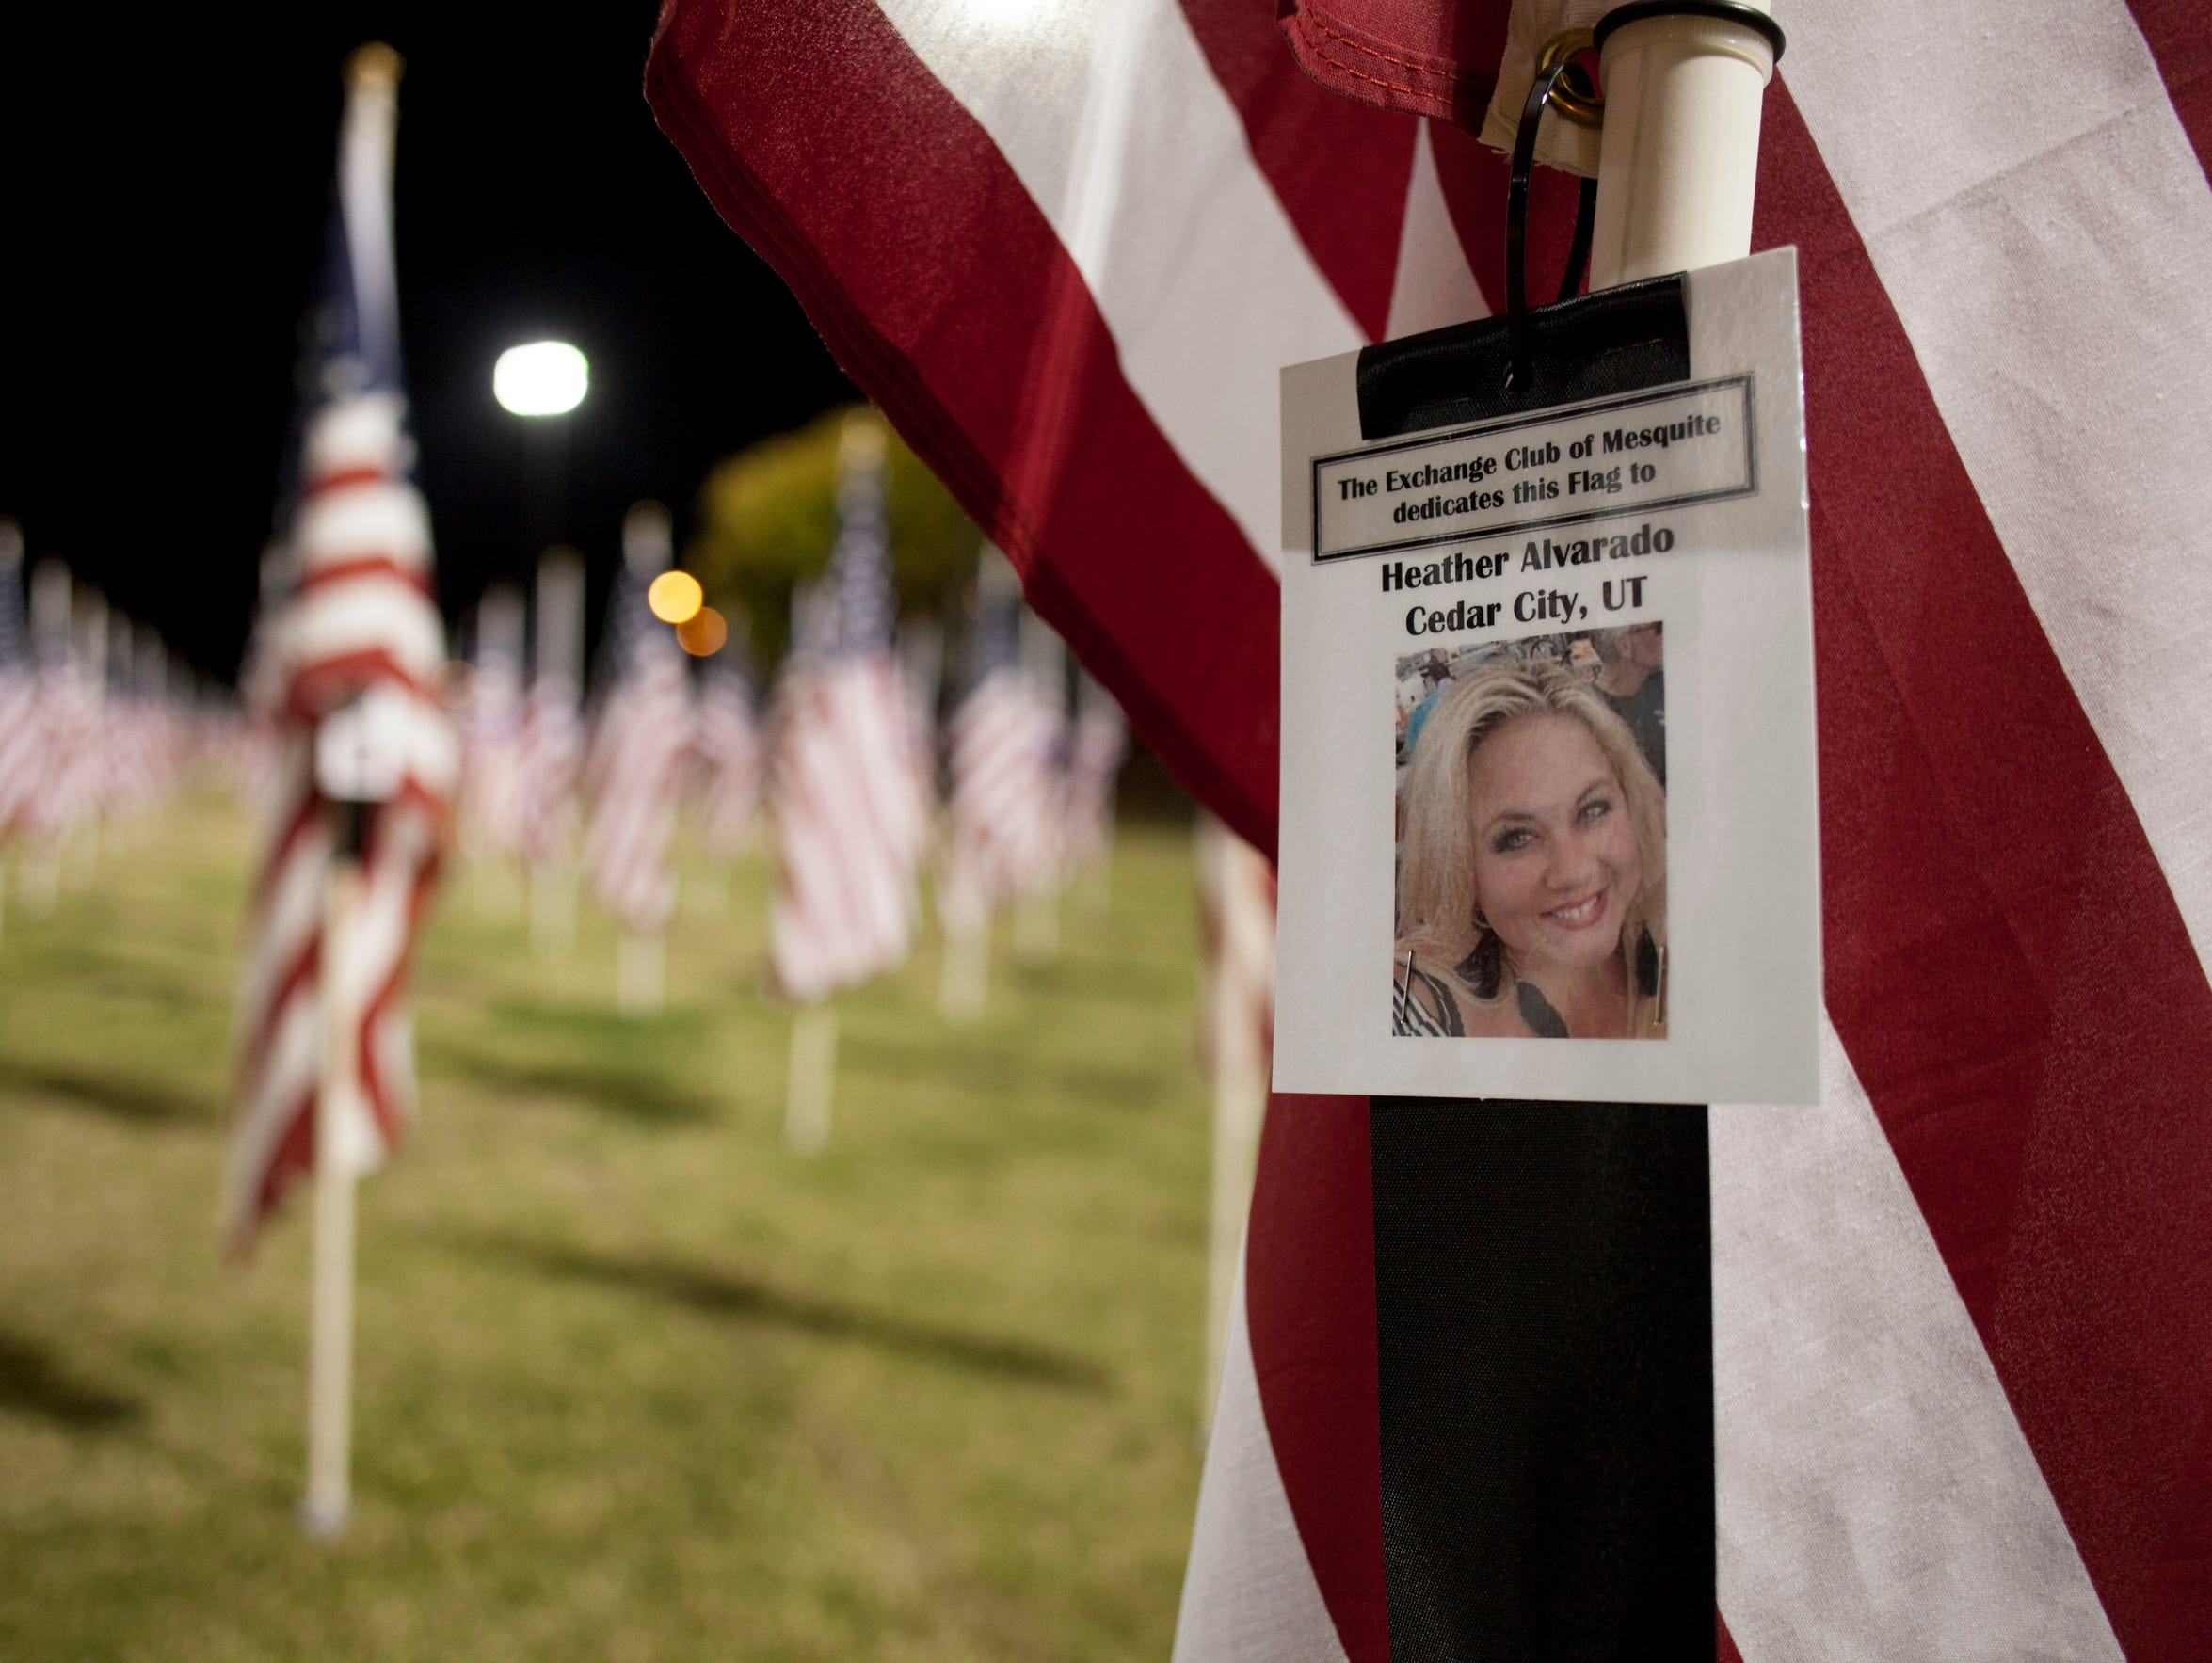 Friends and family of those affected by the Oct.1 shooting